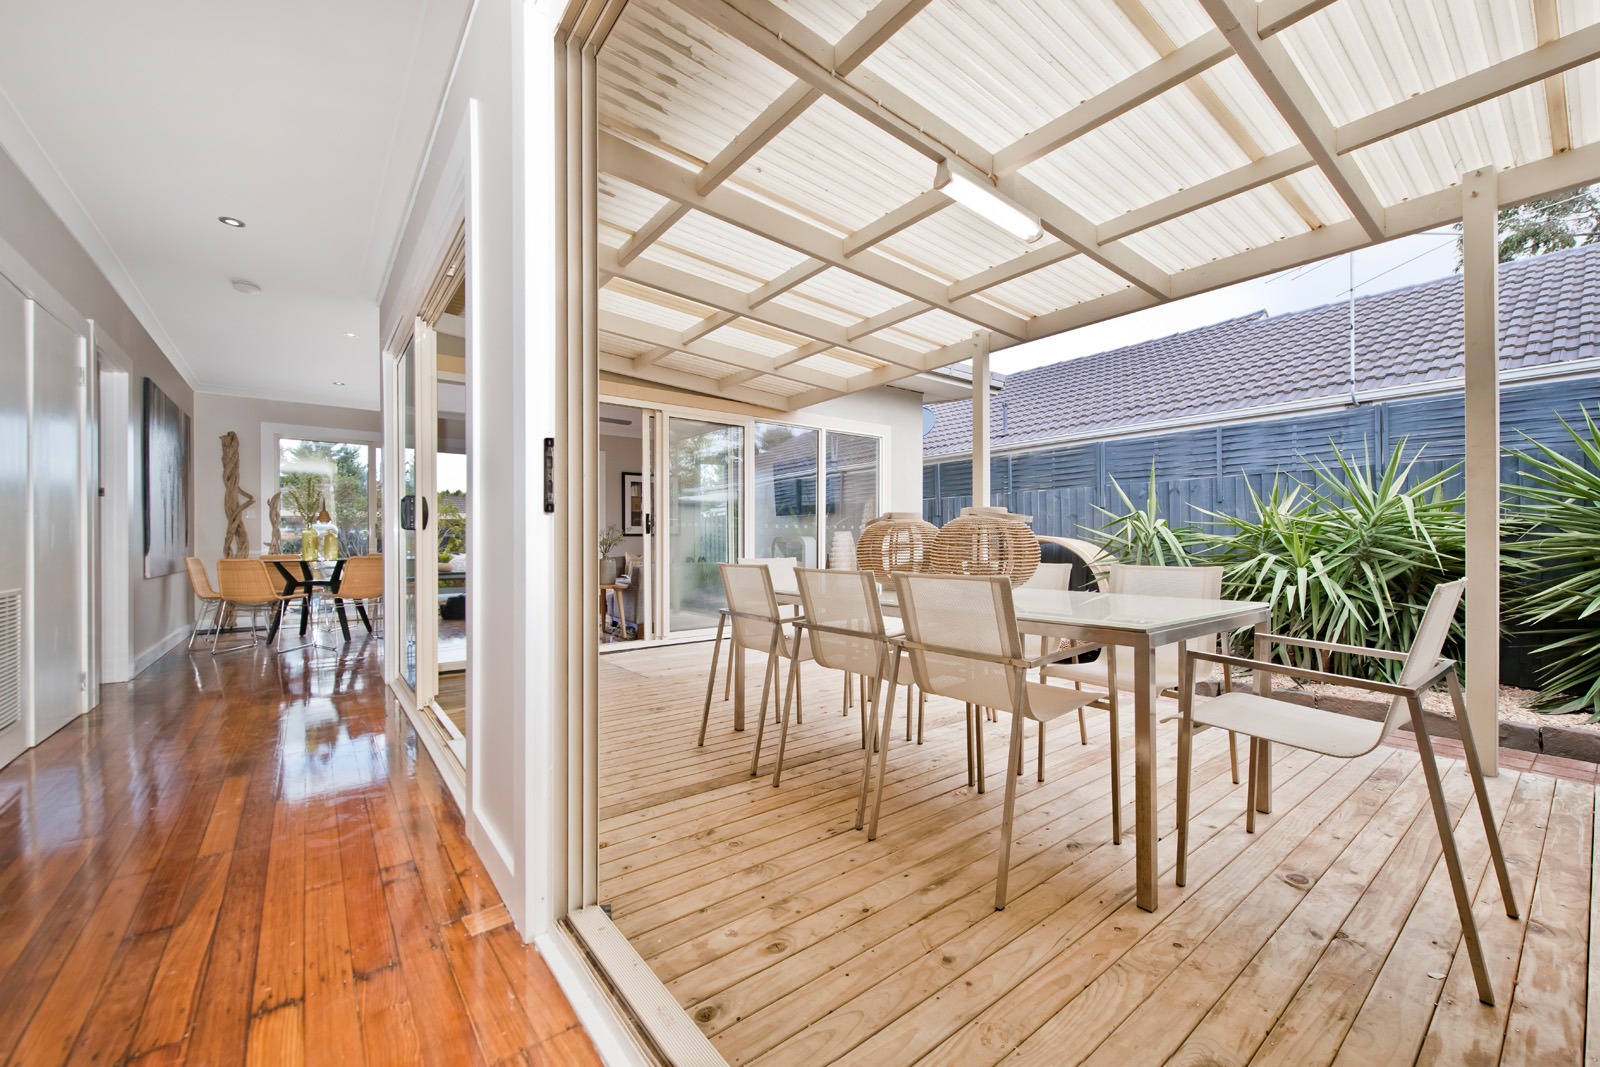 Cherie-Barber_Renovating-For-Profit_Altona-Meadows_Deck-After